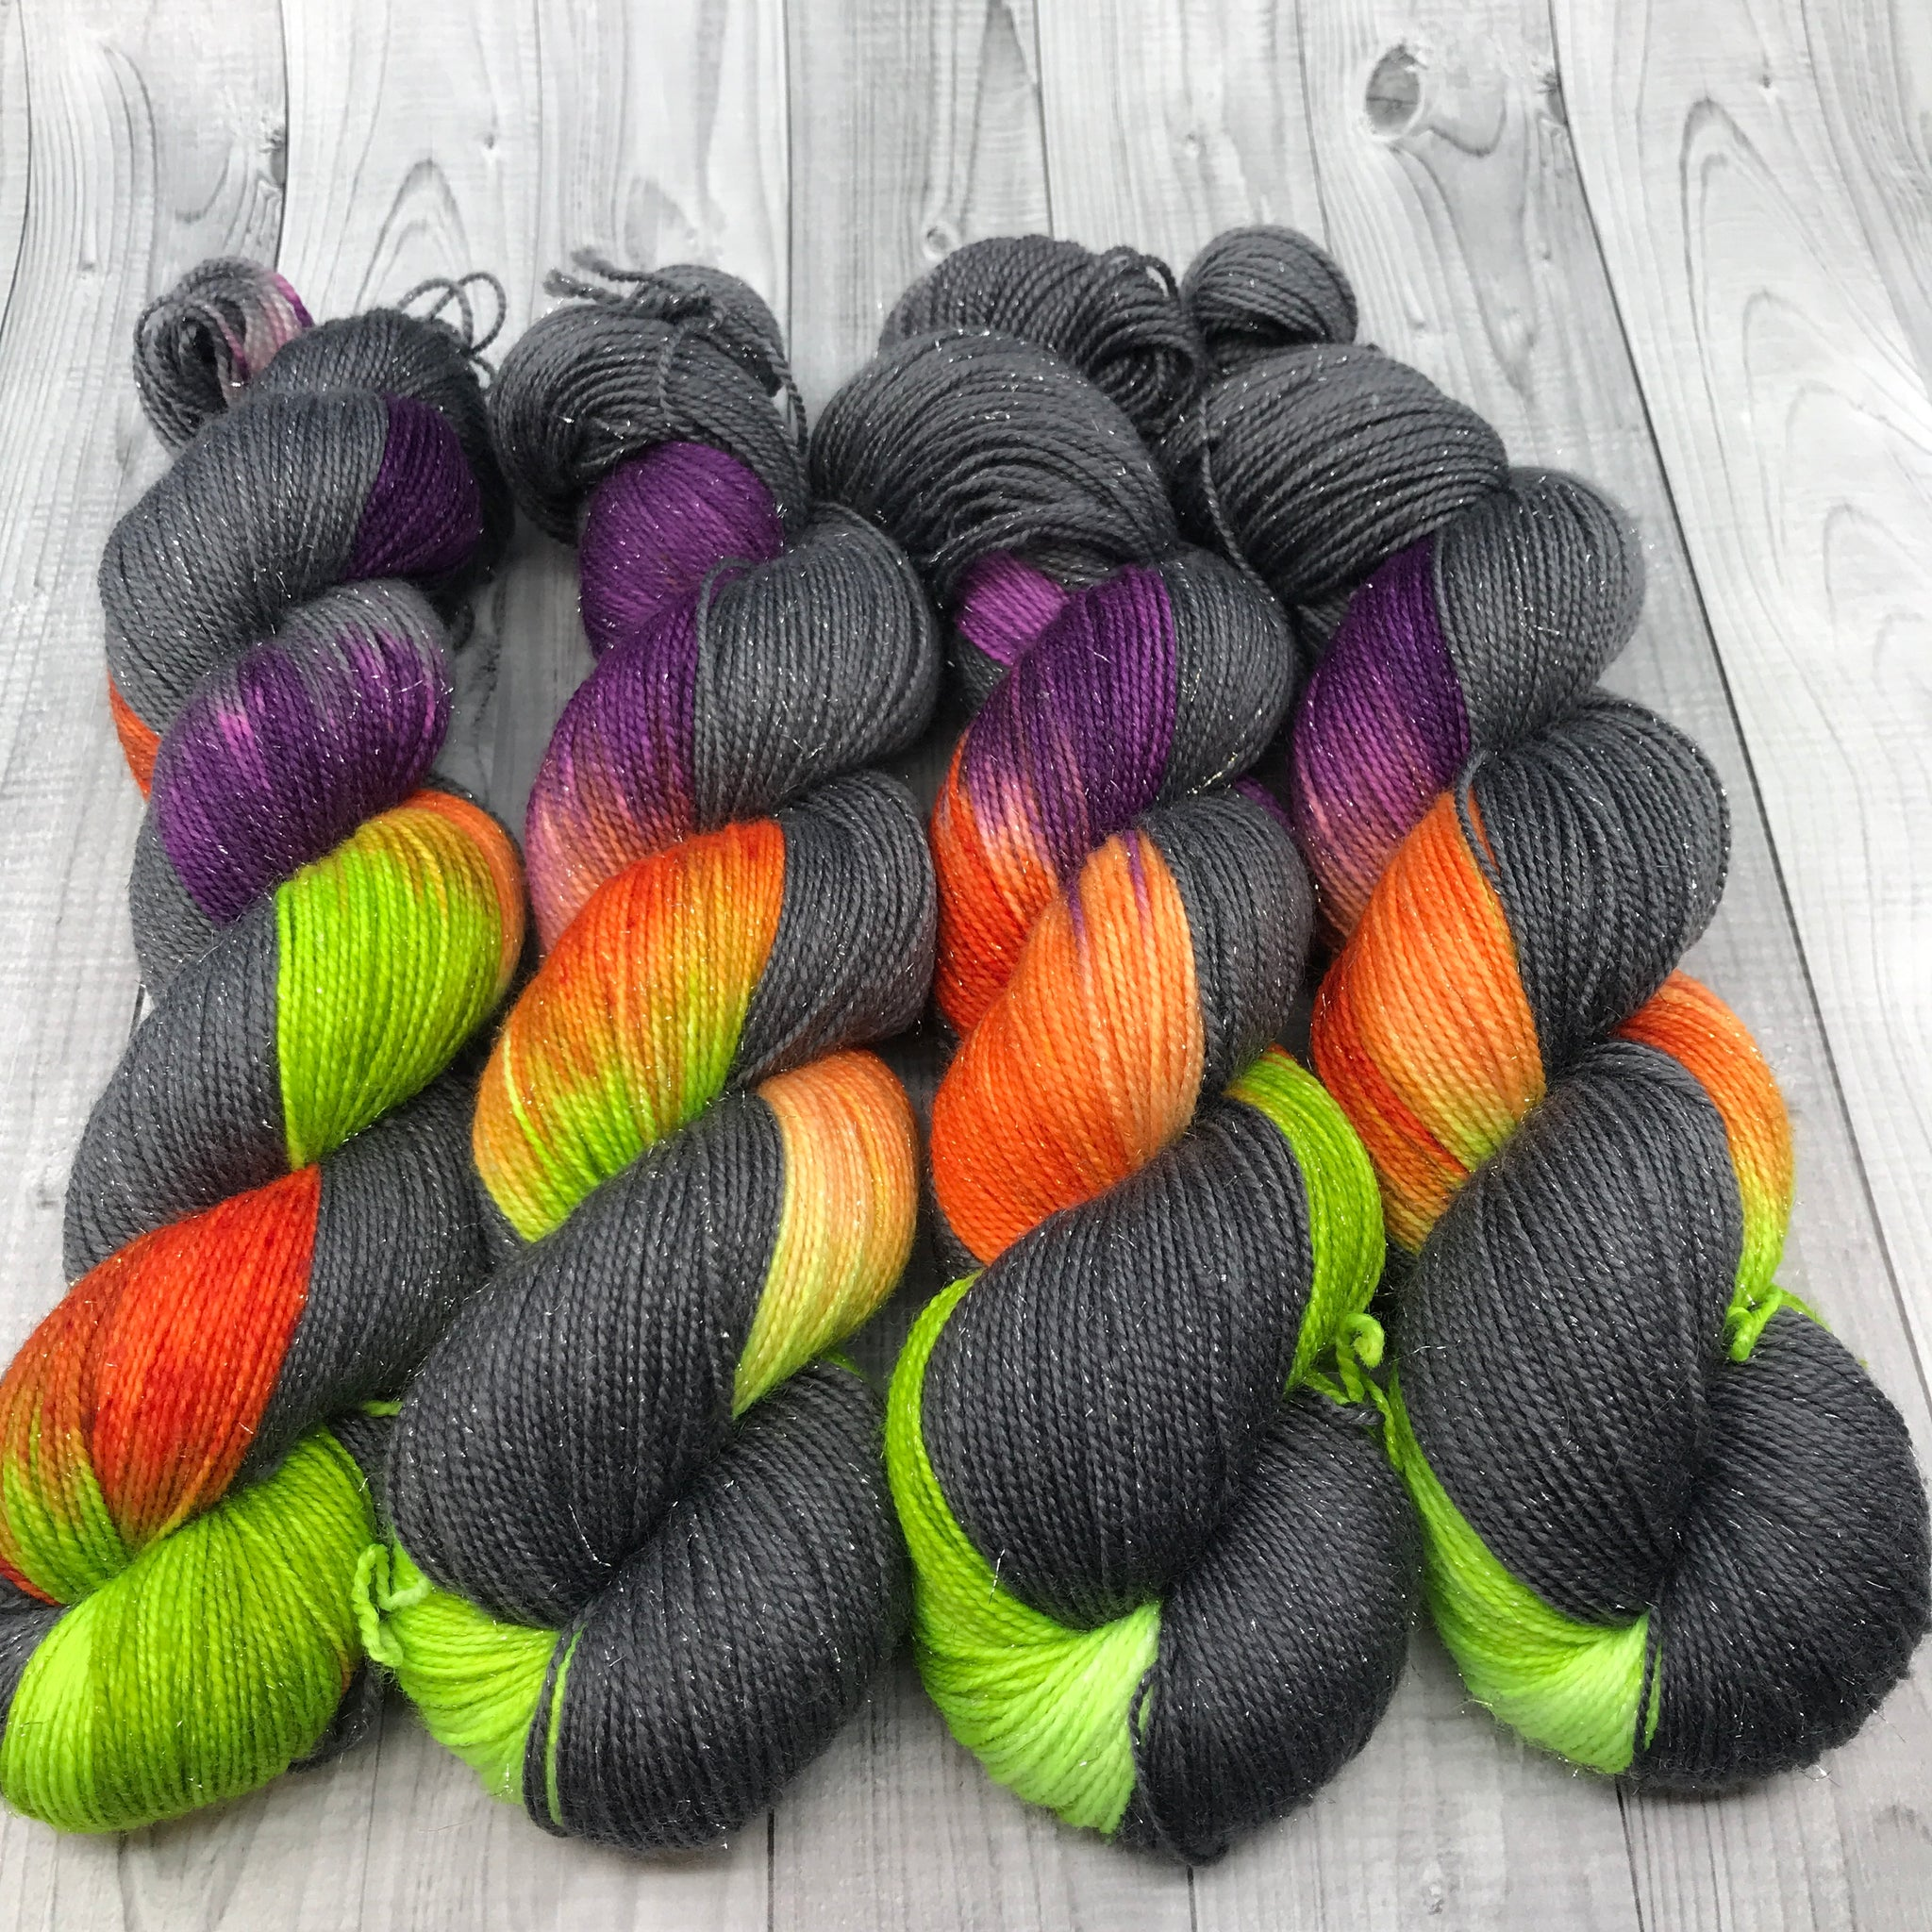 Pnina Sparkle Sock - Halloween Yarn - Bat Country